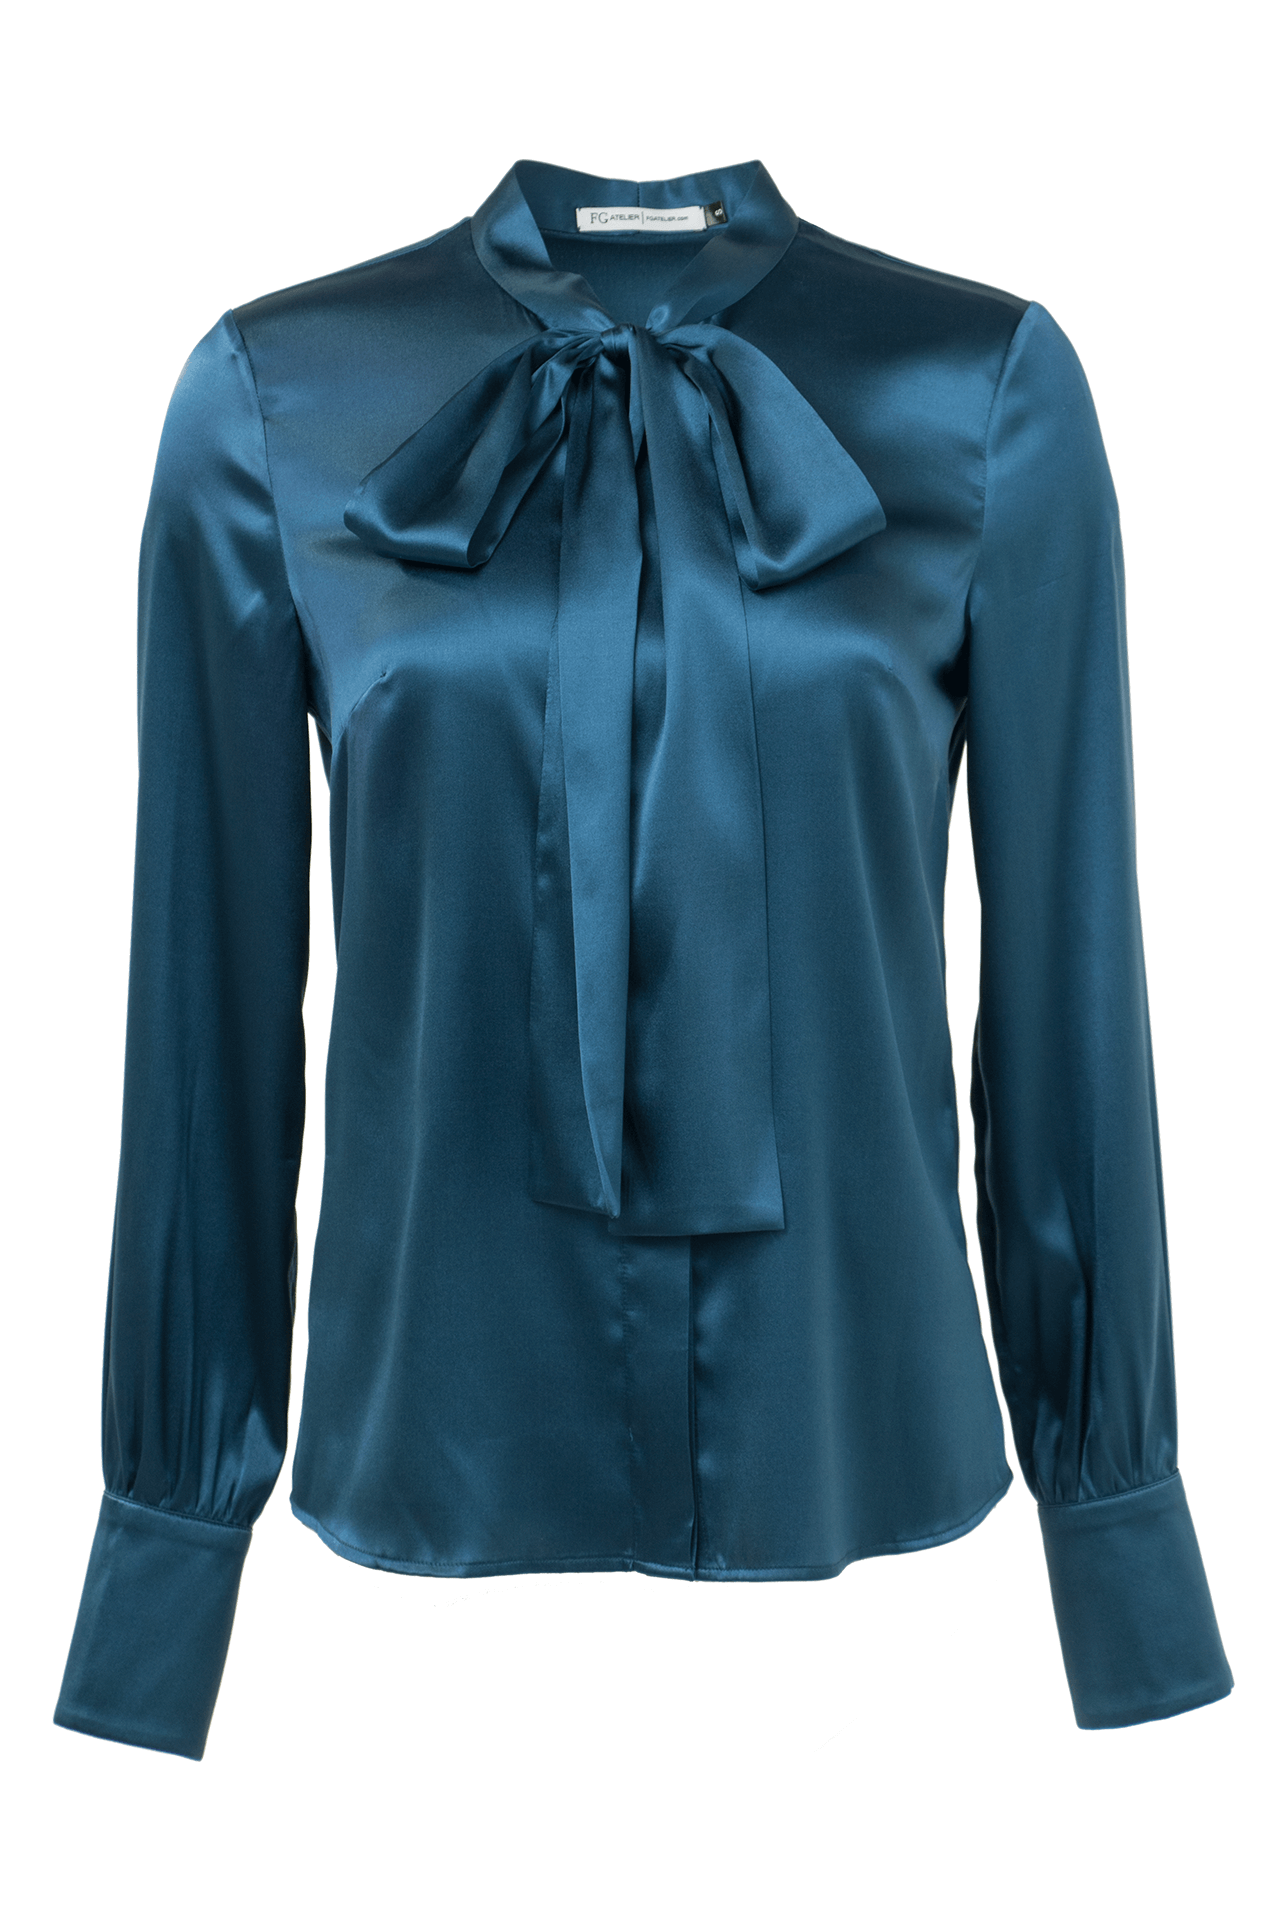 36bd67cea808b7 Topaz blue pussy bow stretch silk shirt. Touch to zoom